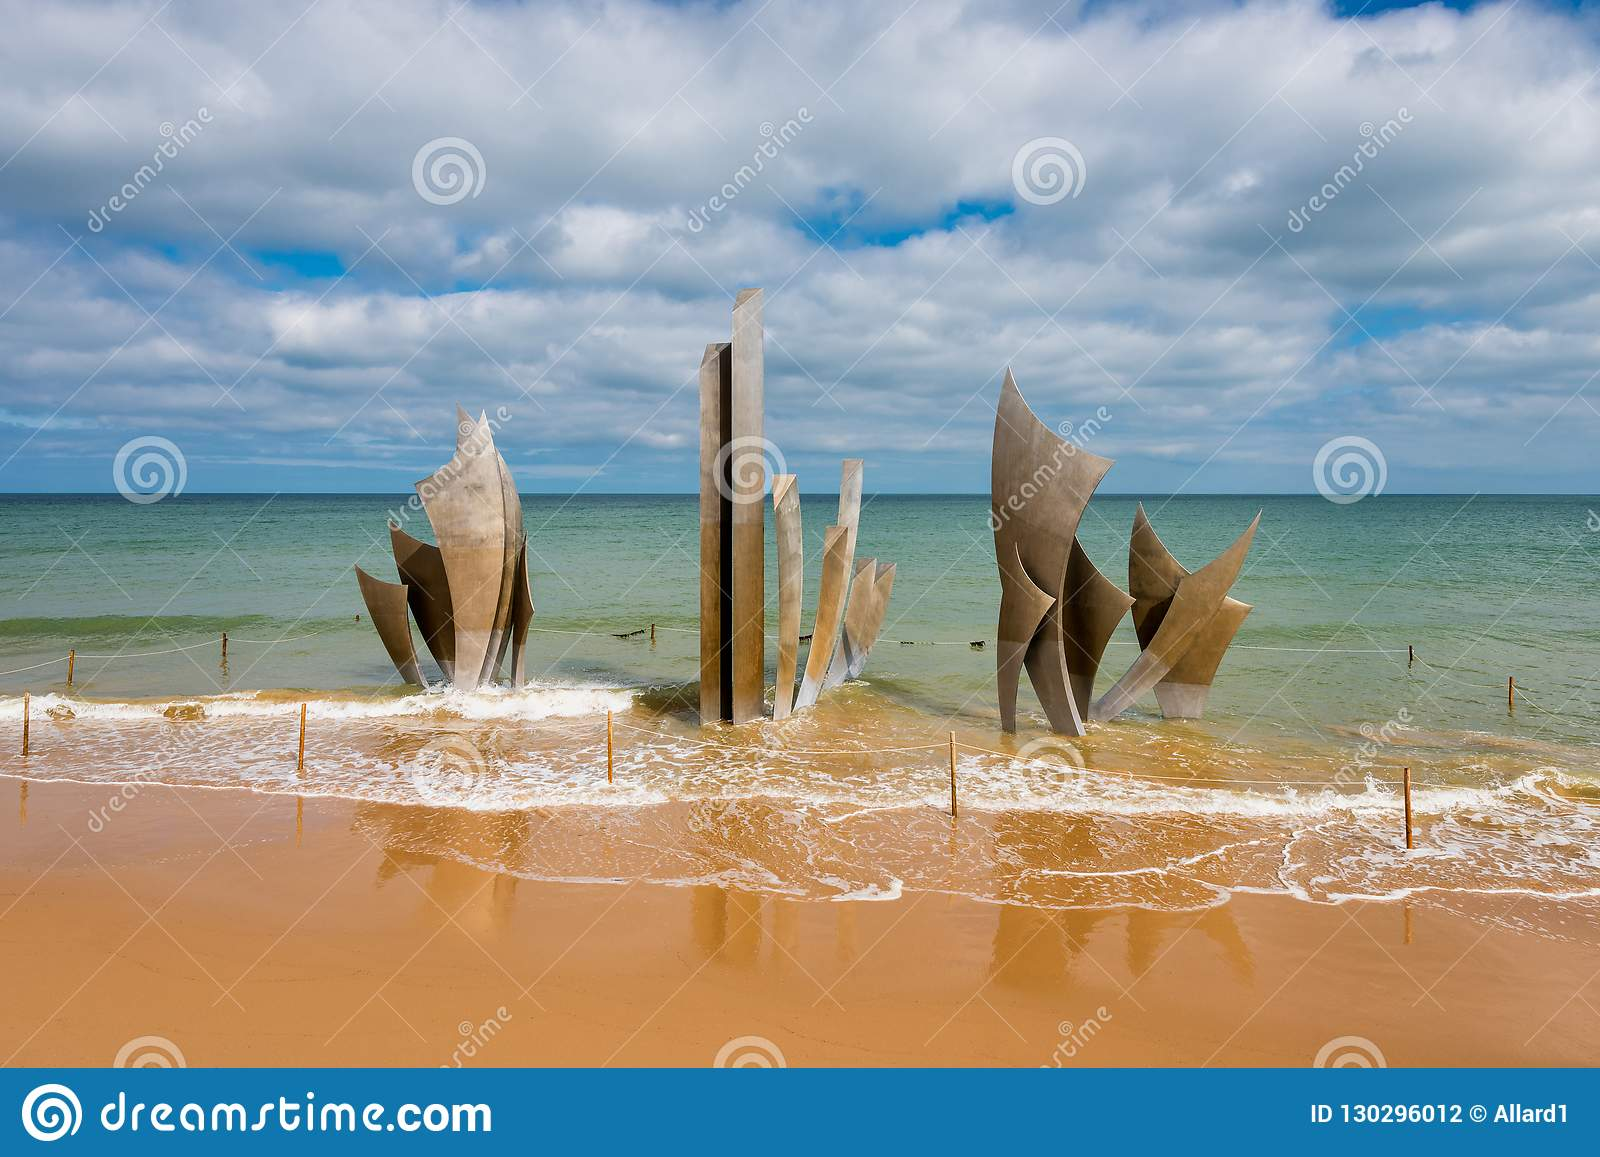 Omaha Beach Memorial Sculpture In Saint-Laurent-sur-Mer